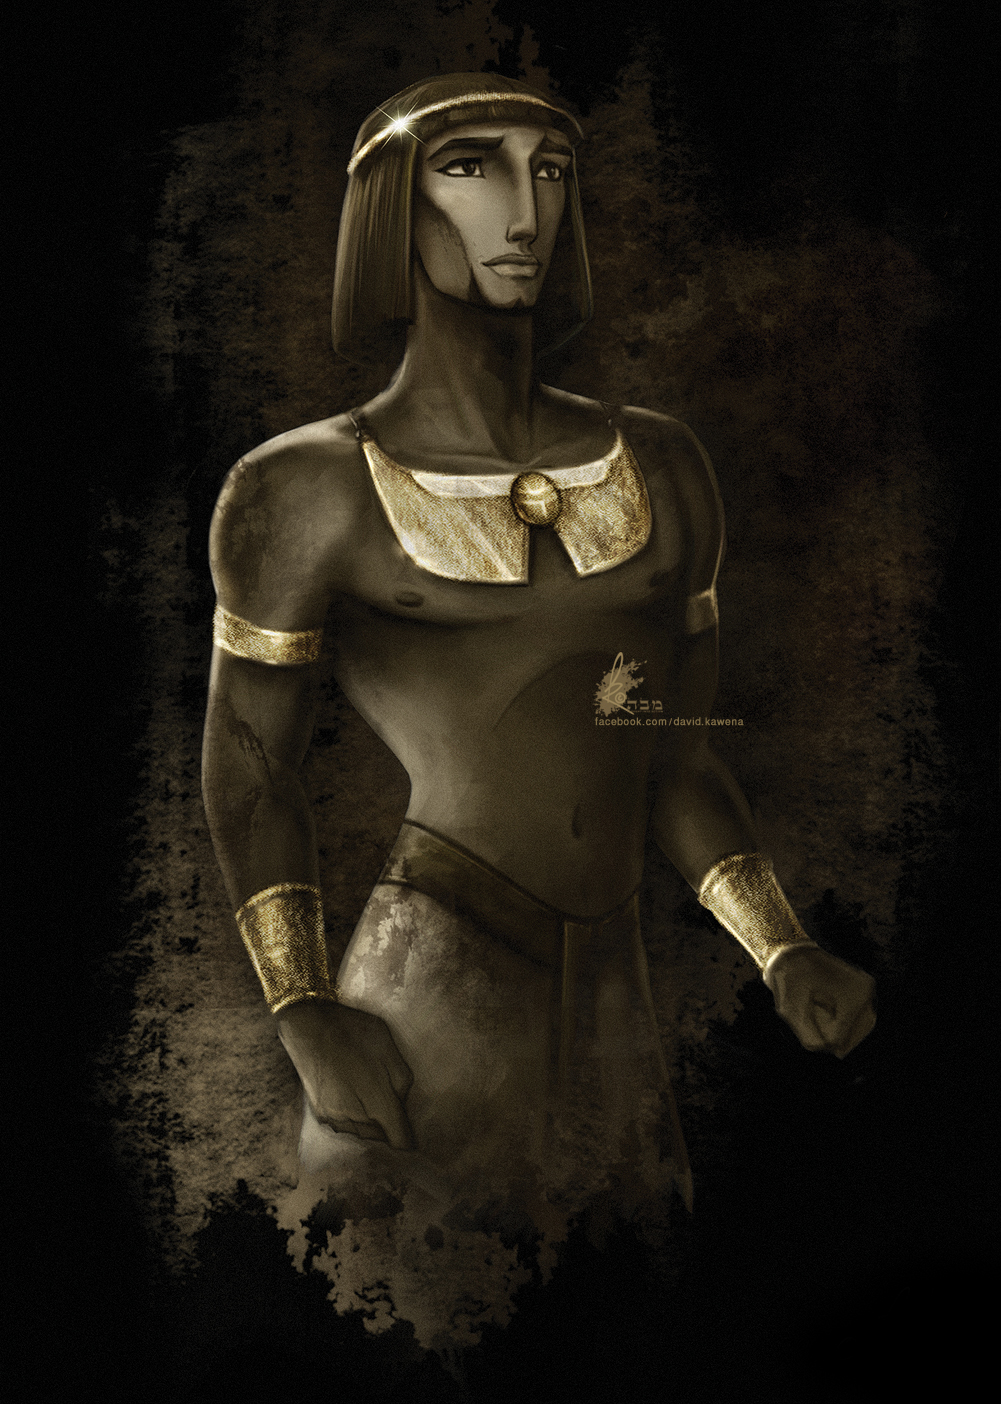 Moses - The Prince of Egypt by davidkawena on DeviantArt